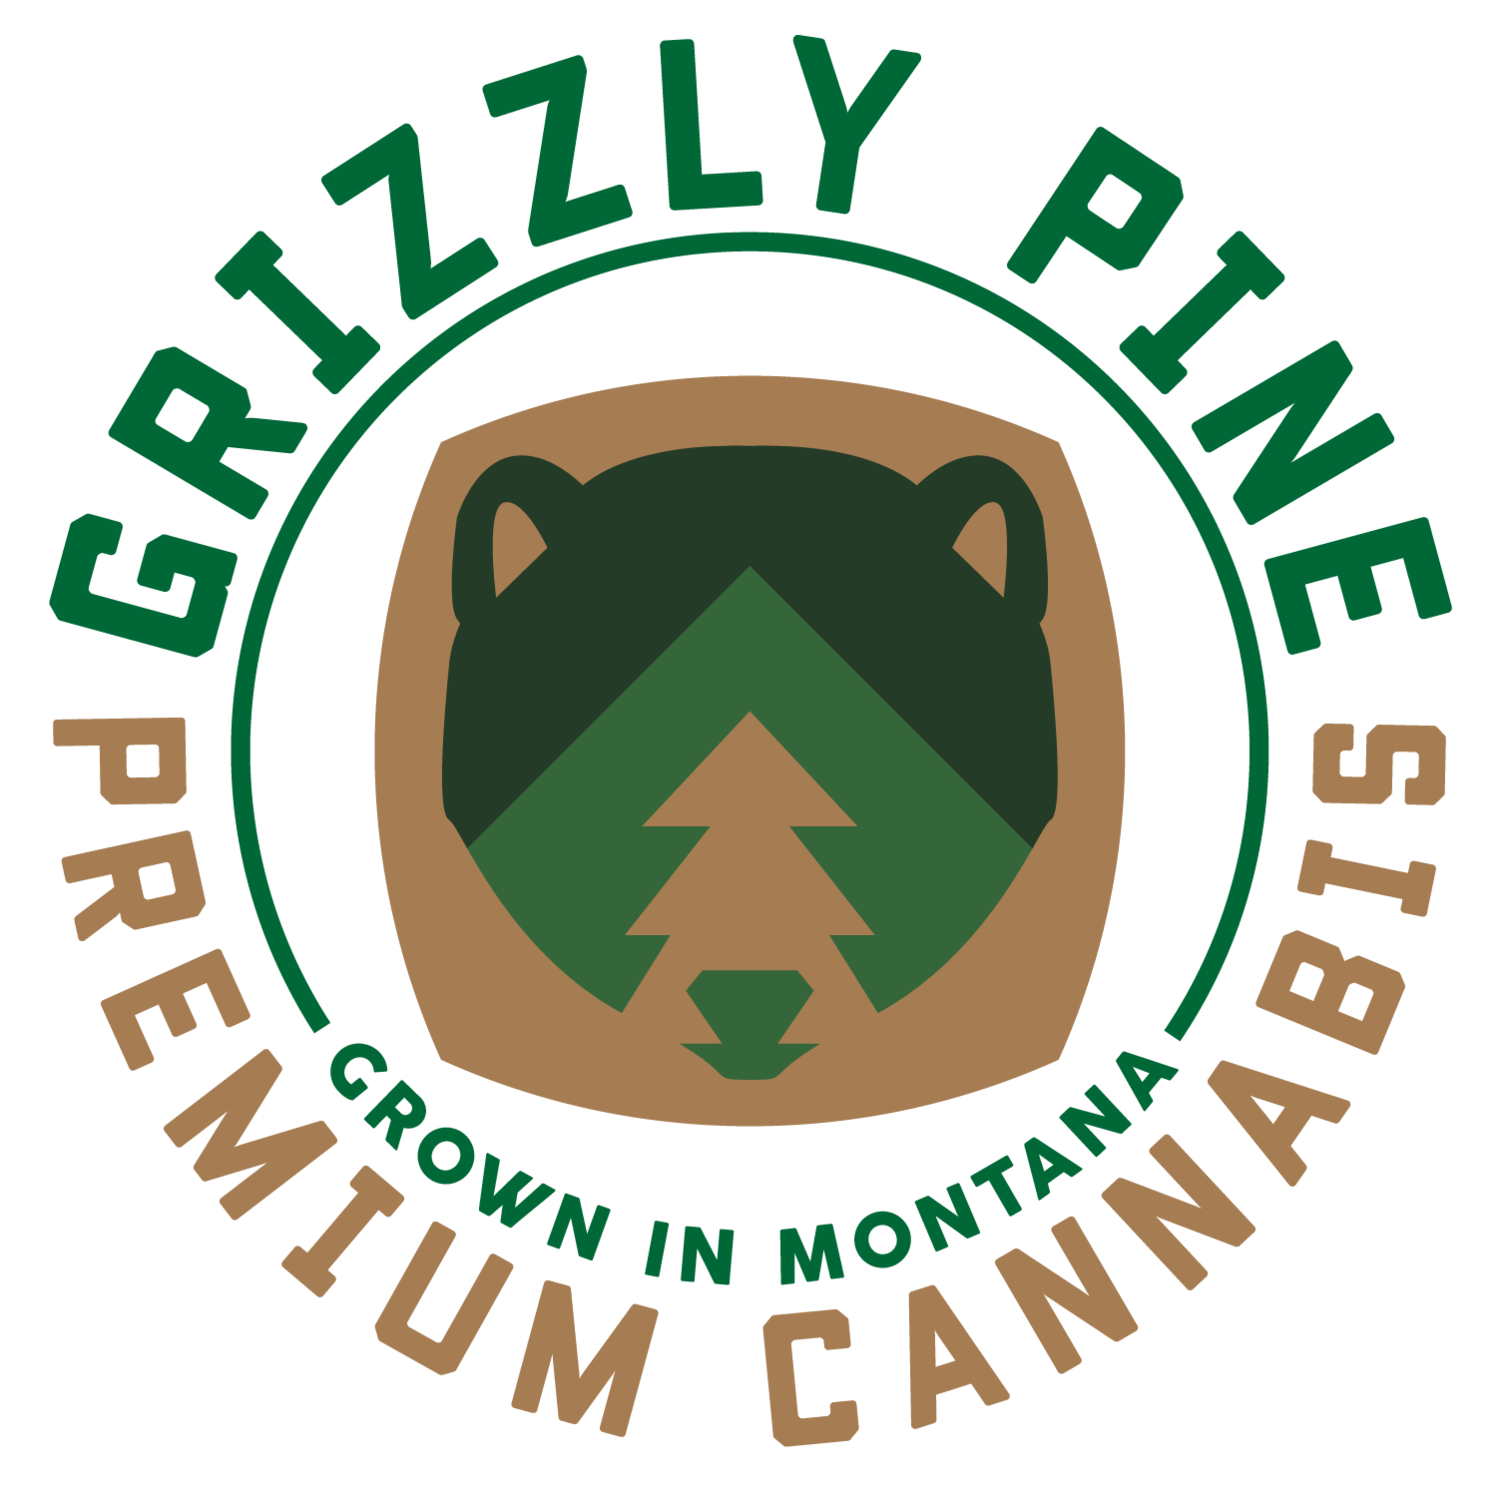 Grizzly Pine | legal medical marijuana dispensary | Cannabis | Bozeman Montana